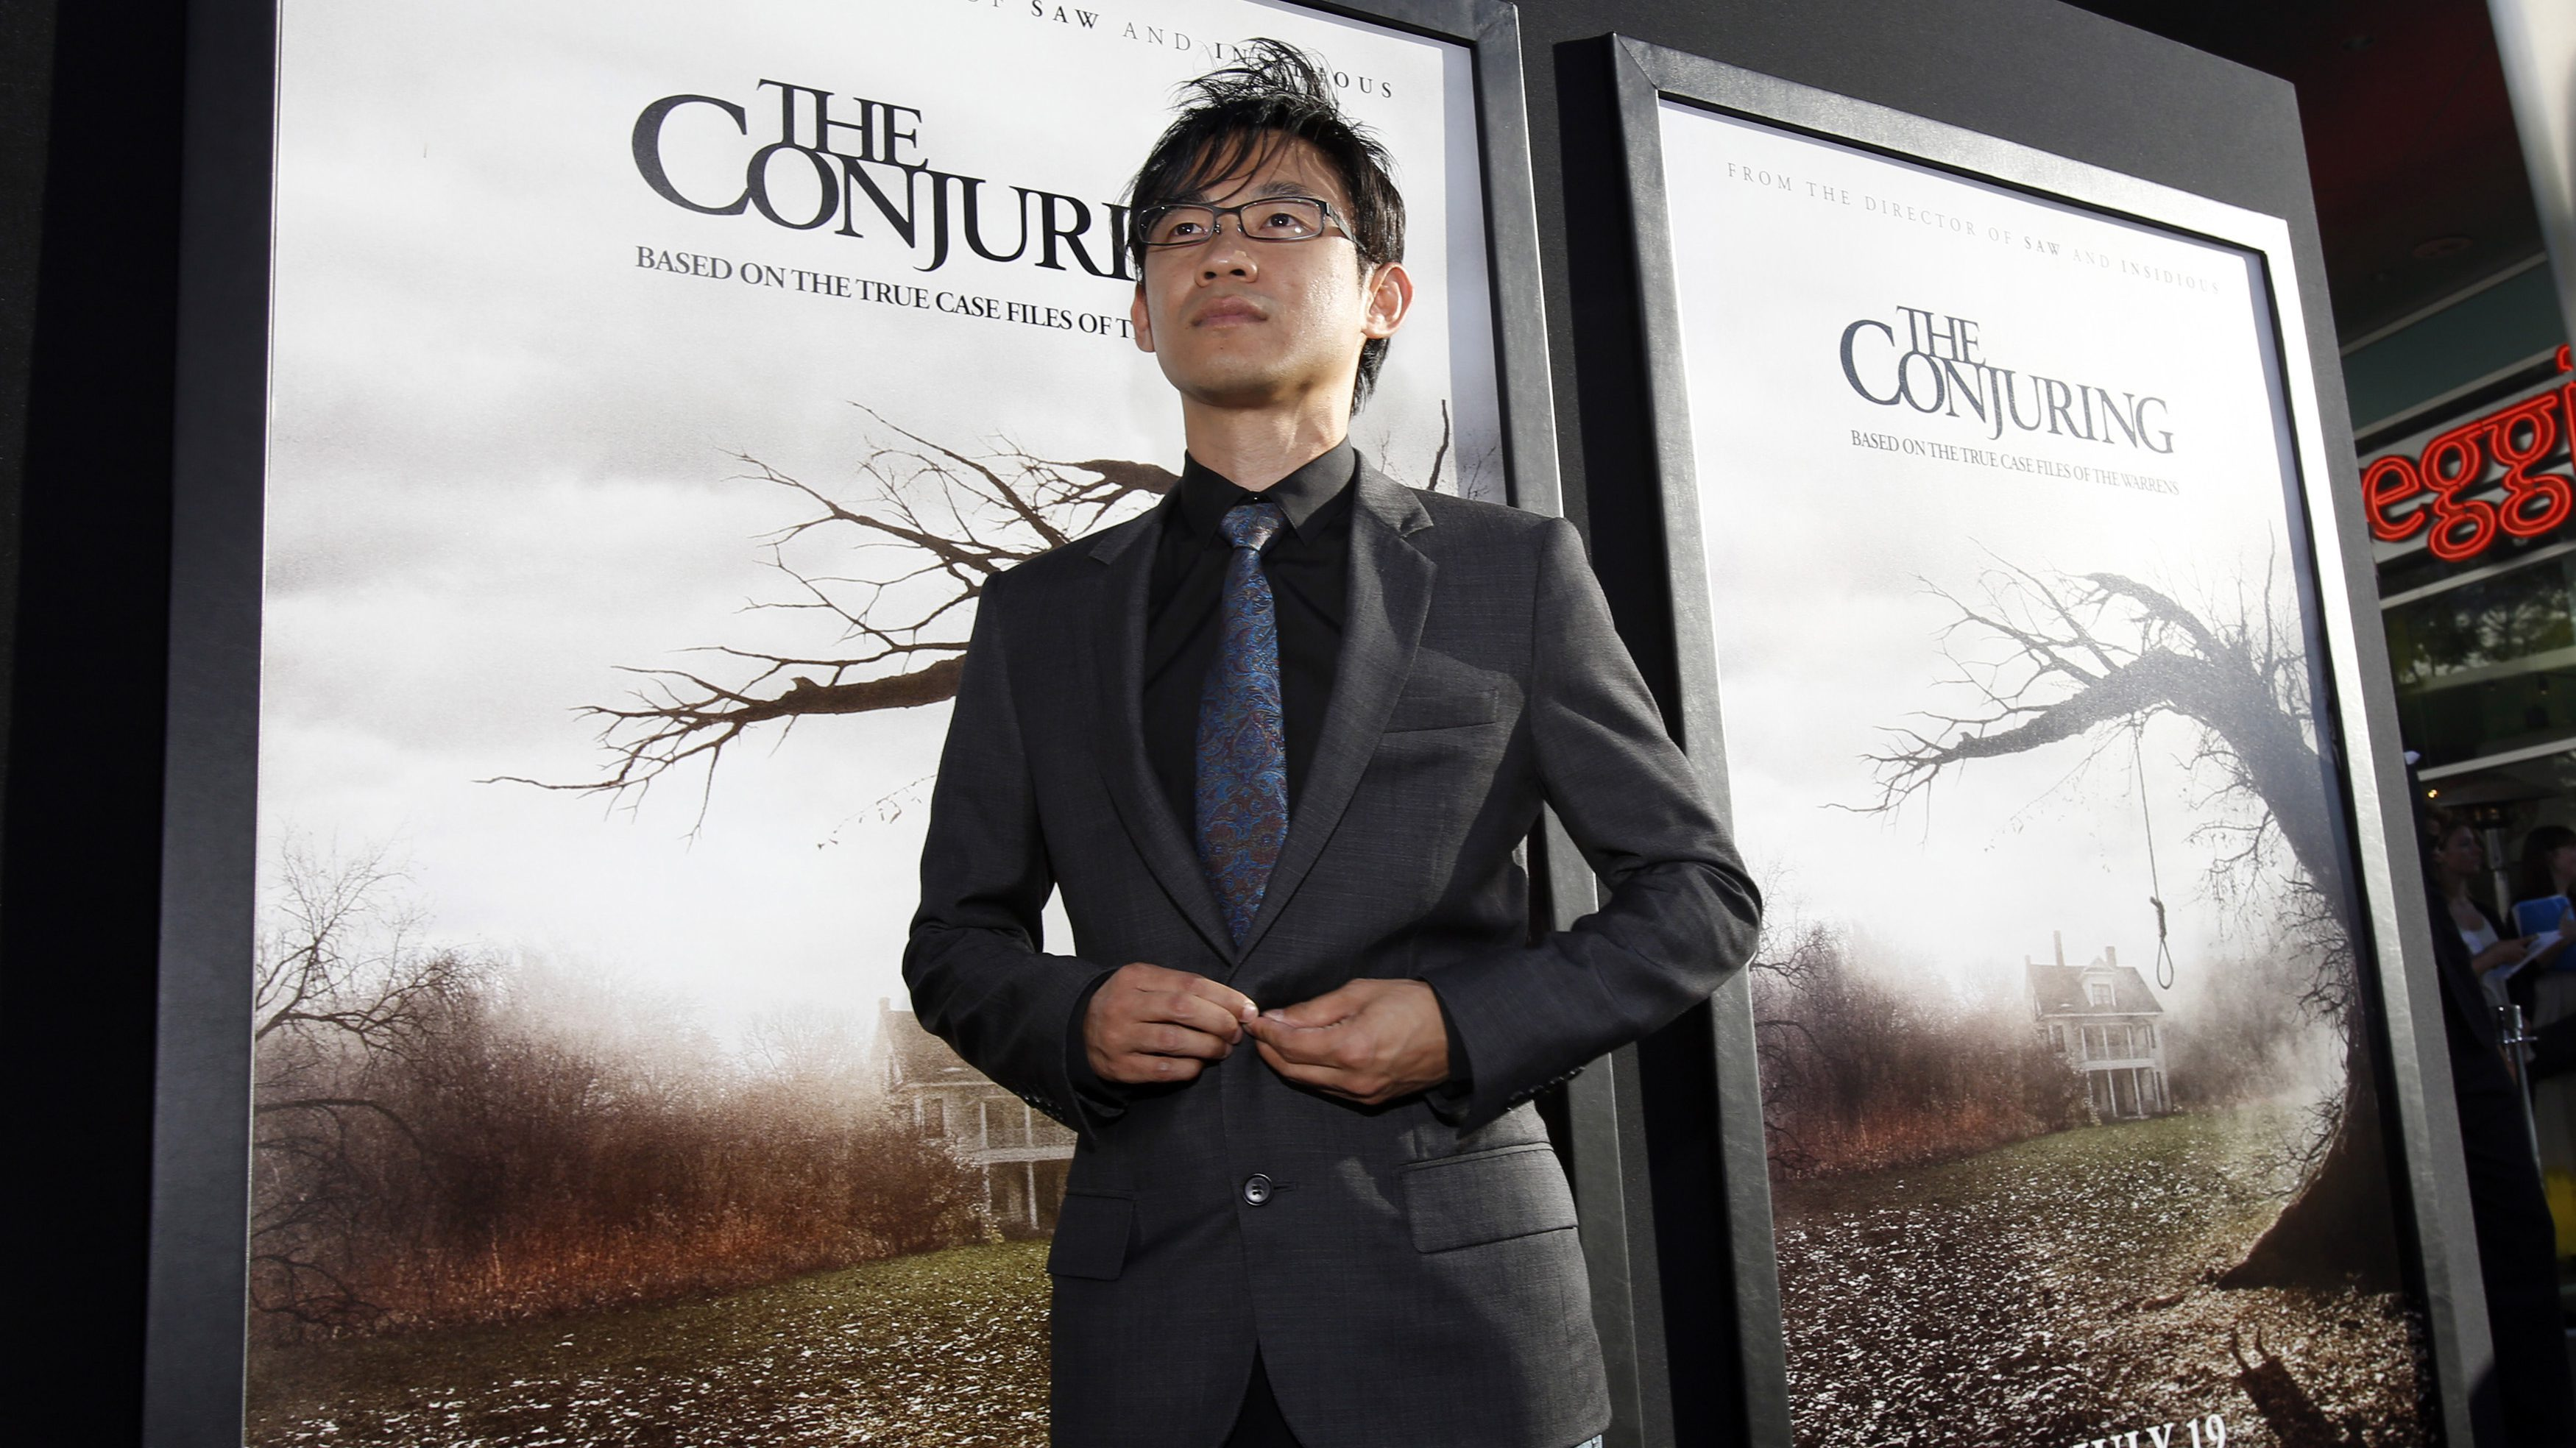 """Director of the movie James Wan poses at the premiere of """"The Conjuring"""" at the Cinerama Dome in Los Angeles, California July 15, 2013. The movie opens in the U.S. on July 19.  REUTERS/Mario Anzuoni  (UNITED STATES - Tags: ENTERTAINMENT) - RTX11NZL"""